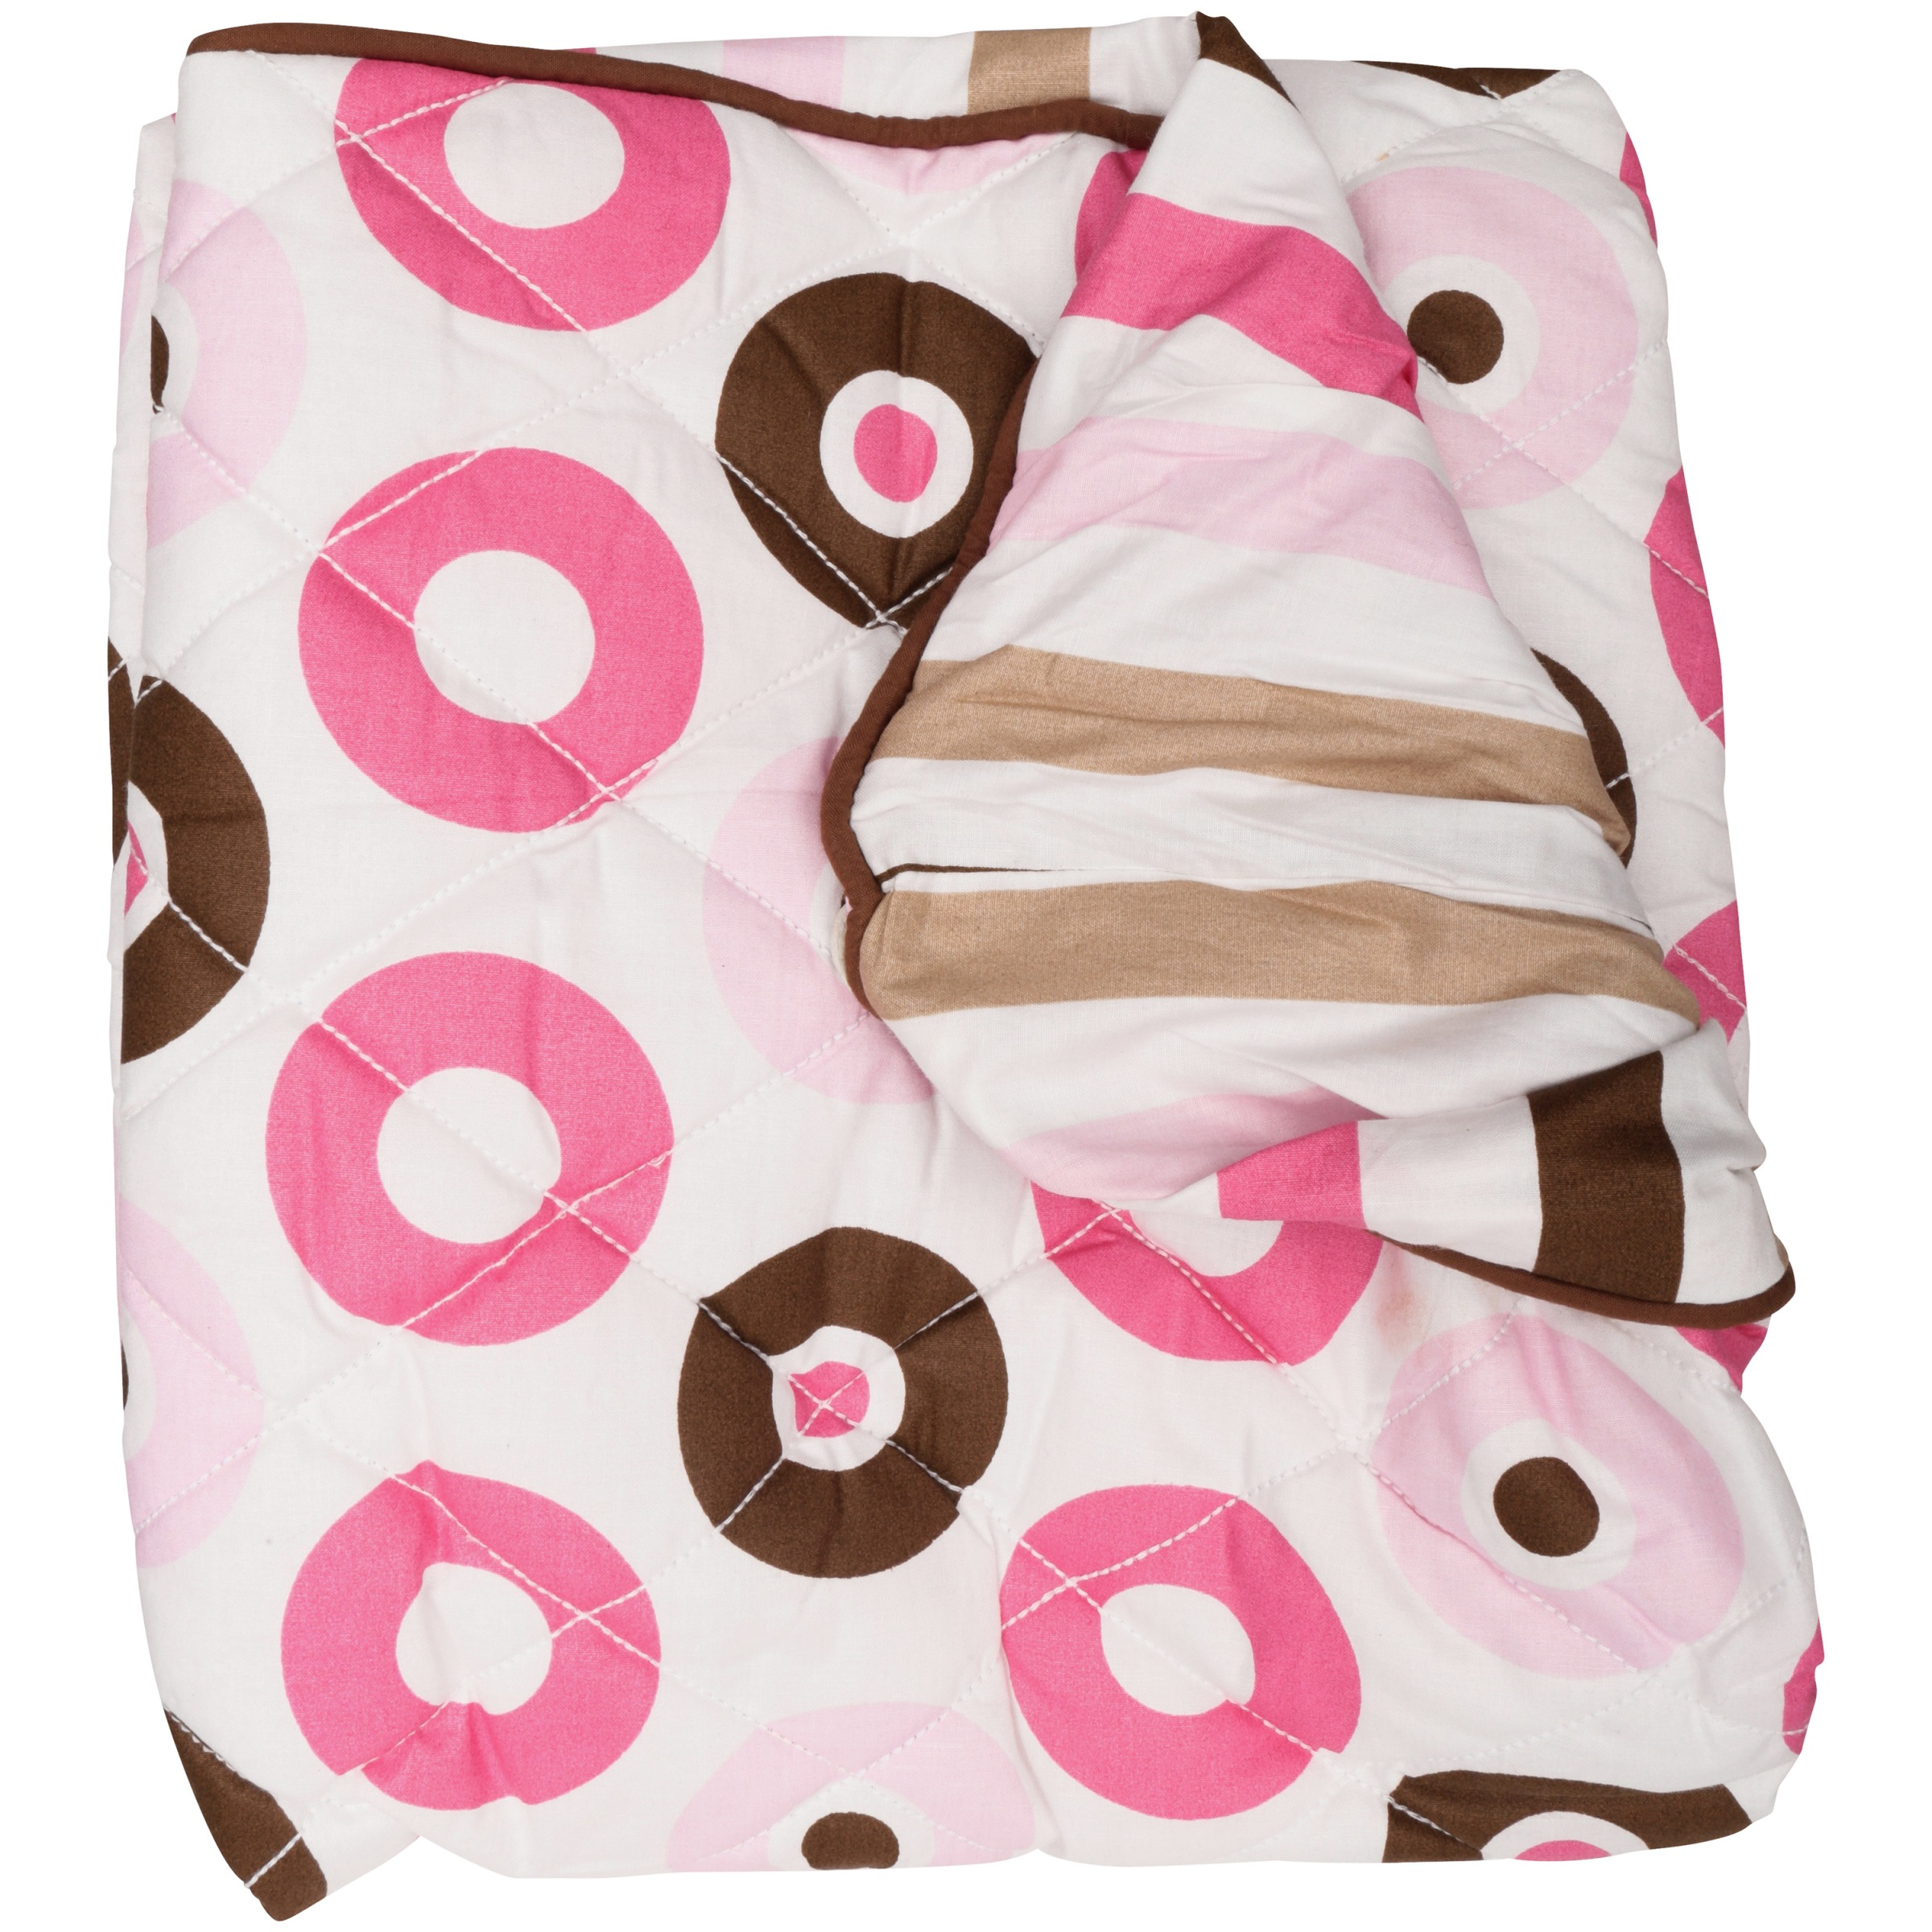 Bacati Pink and Chocolate Dots Changing Pad Cover